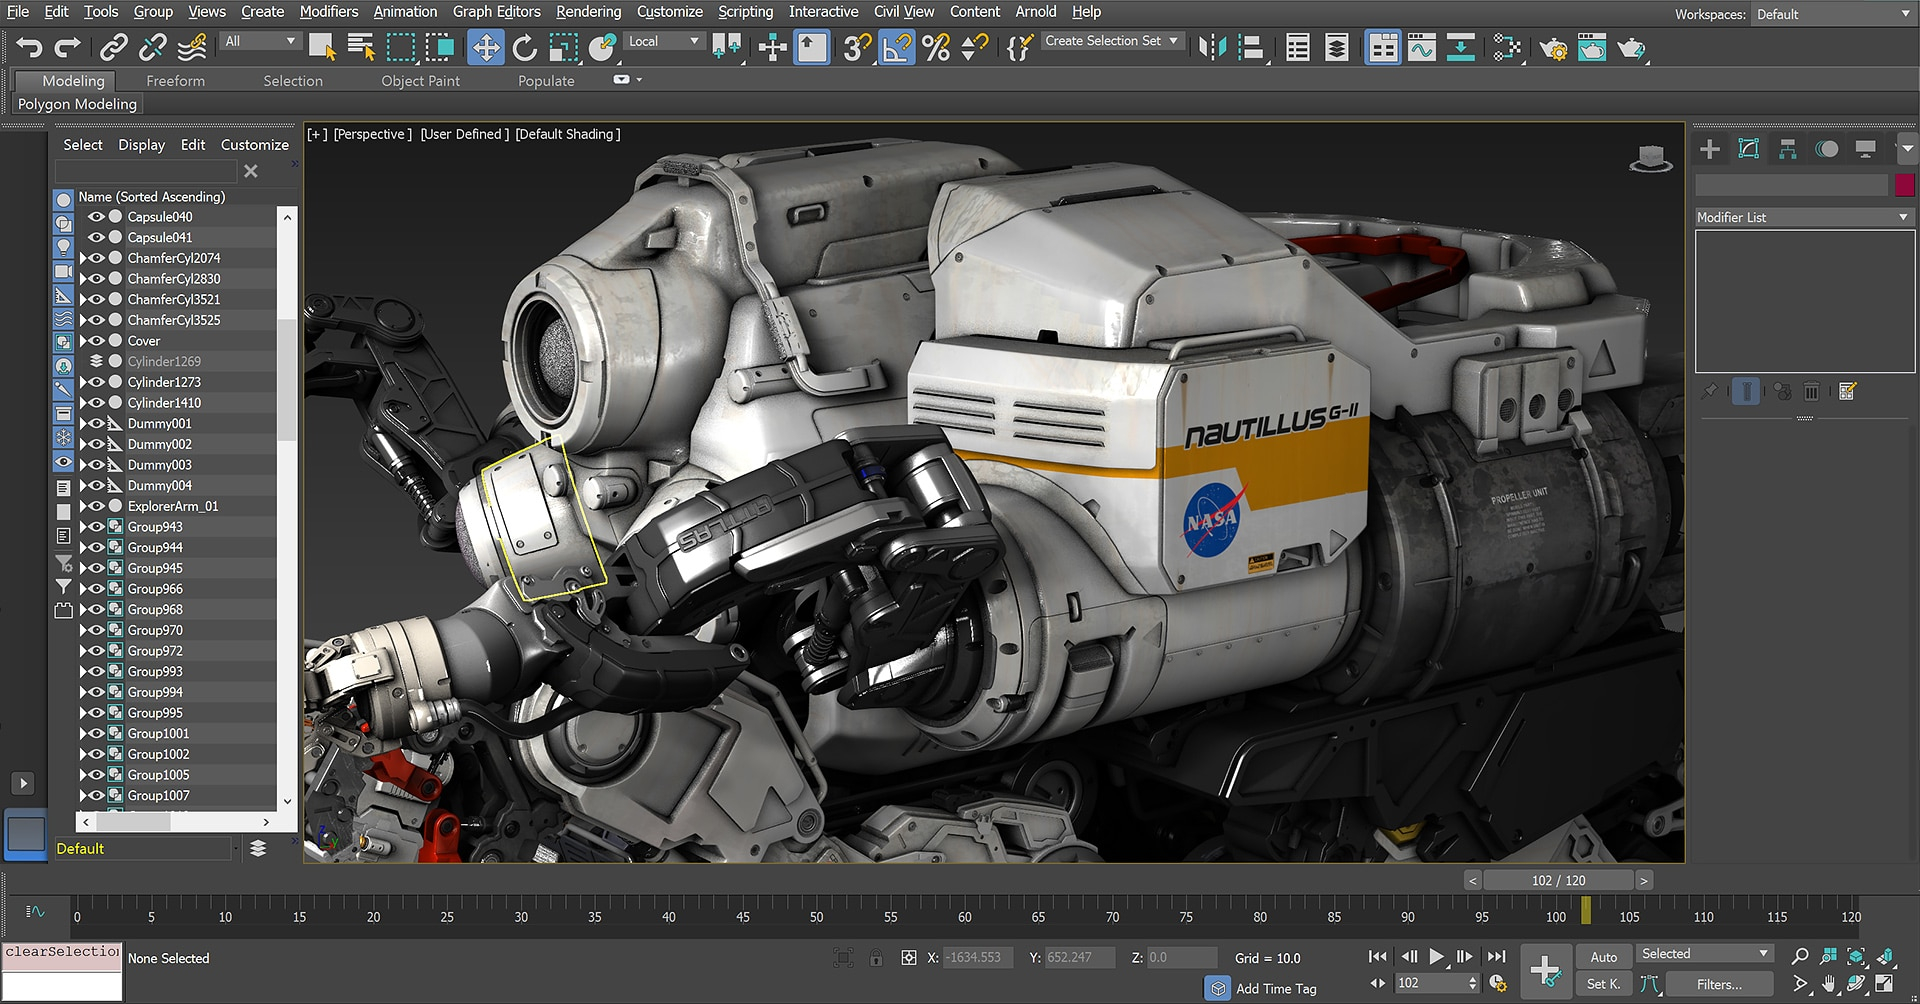 3d Modeling Rendering And Animation New Features In 3ds Max 2020 3d Modeling Rendering Autodesk